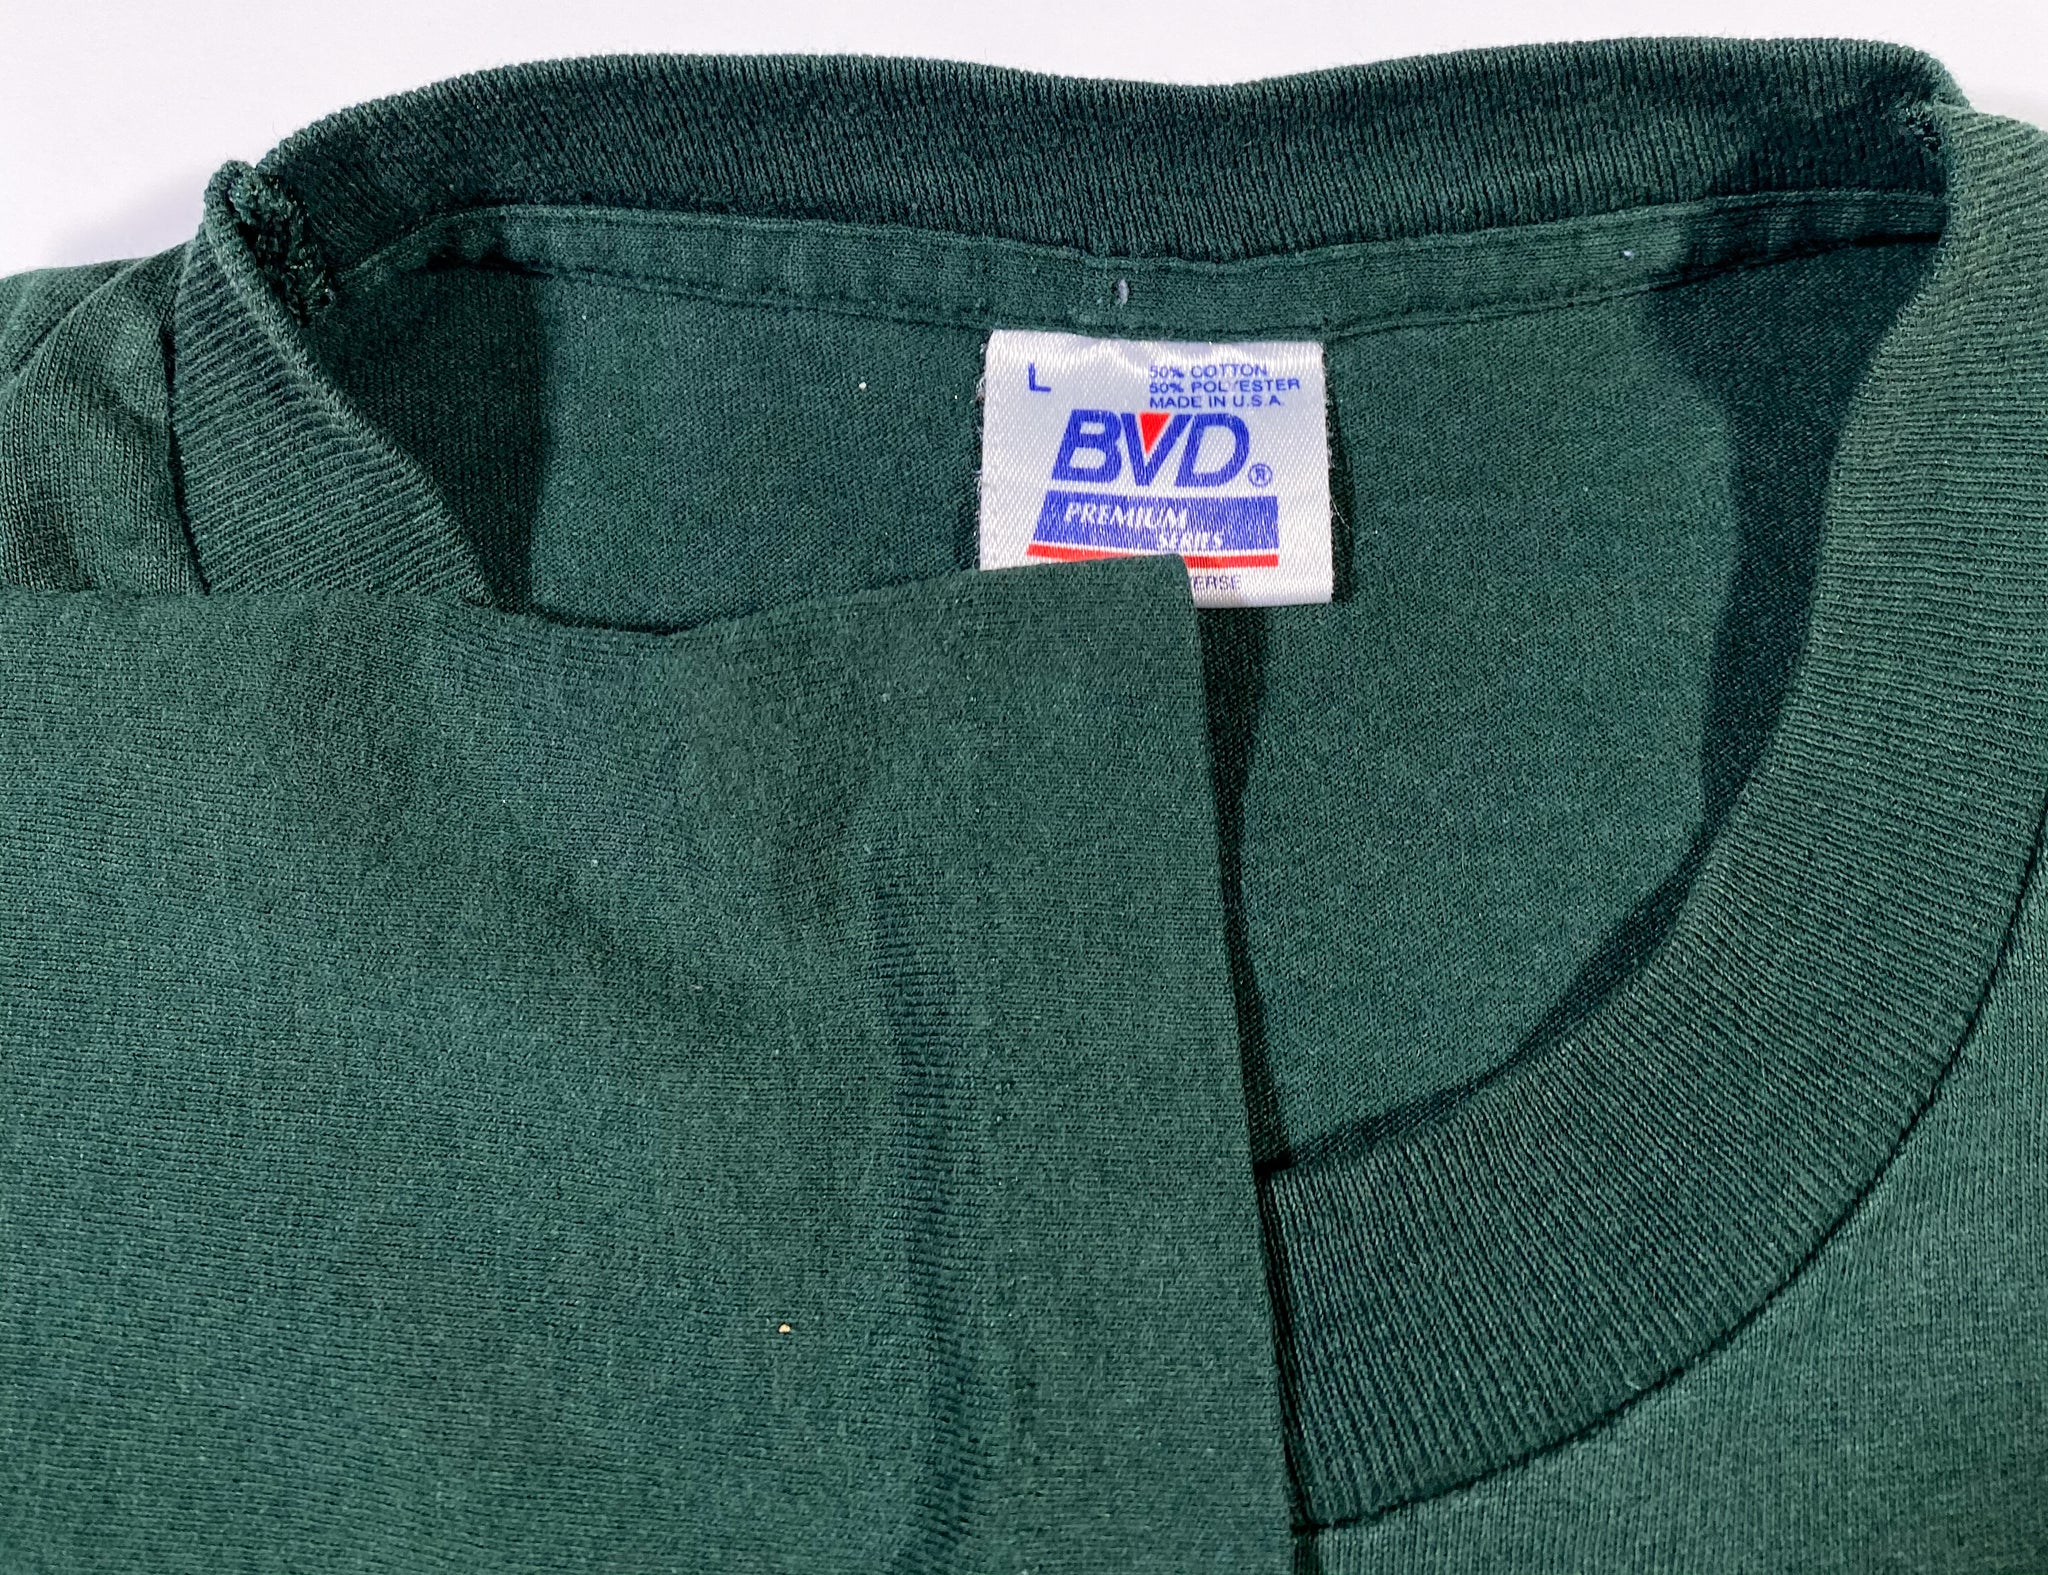 Vintage TCON Green BVD Pocket Tee - Fits L